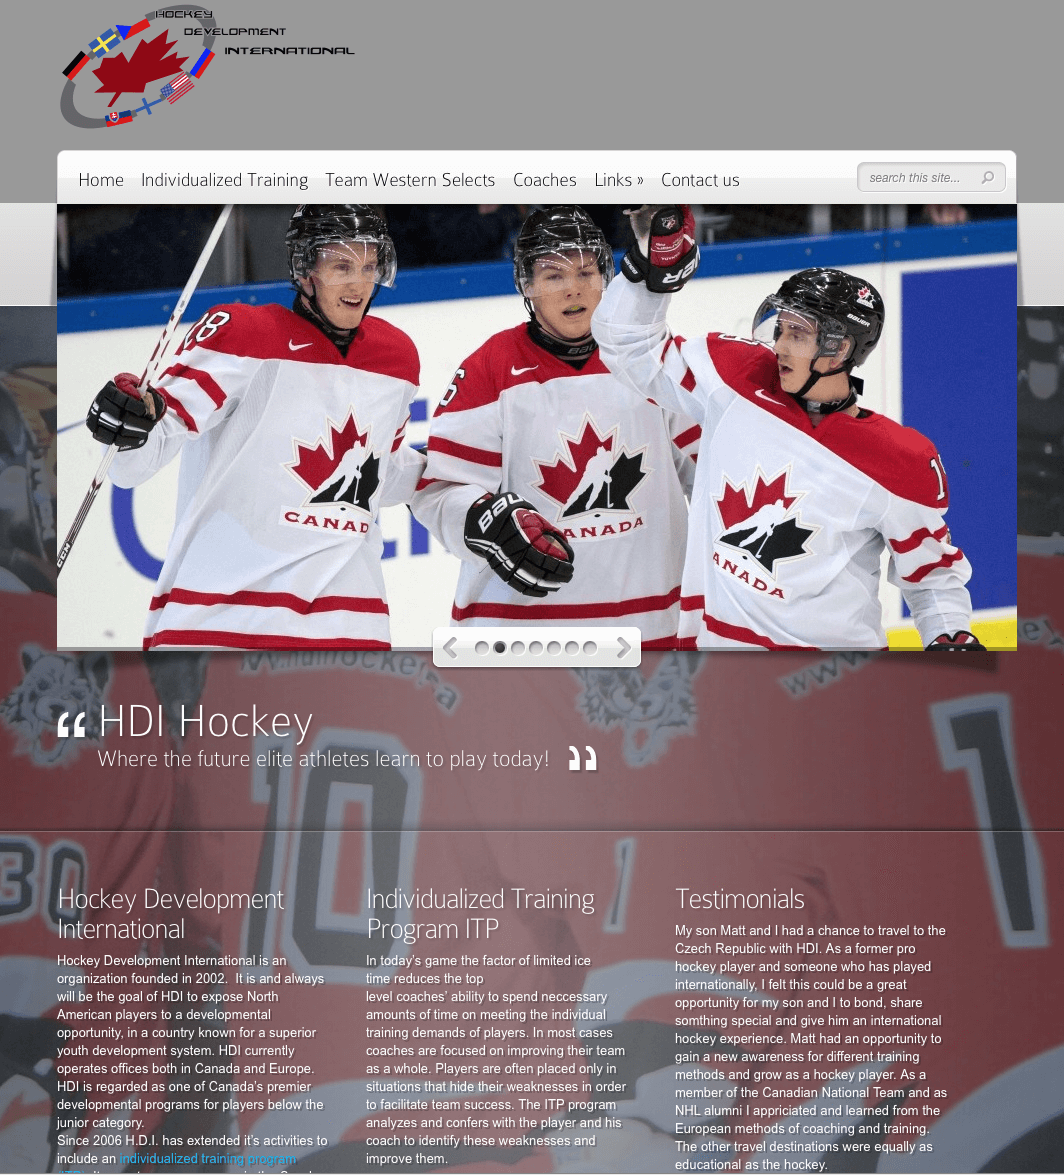 HDI Hockey website